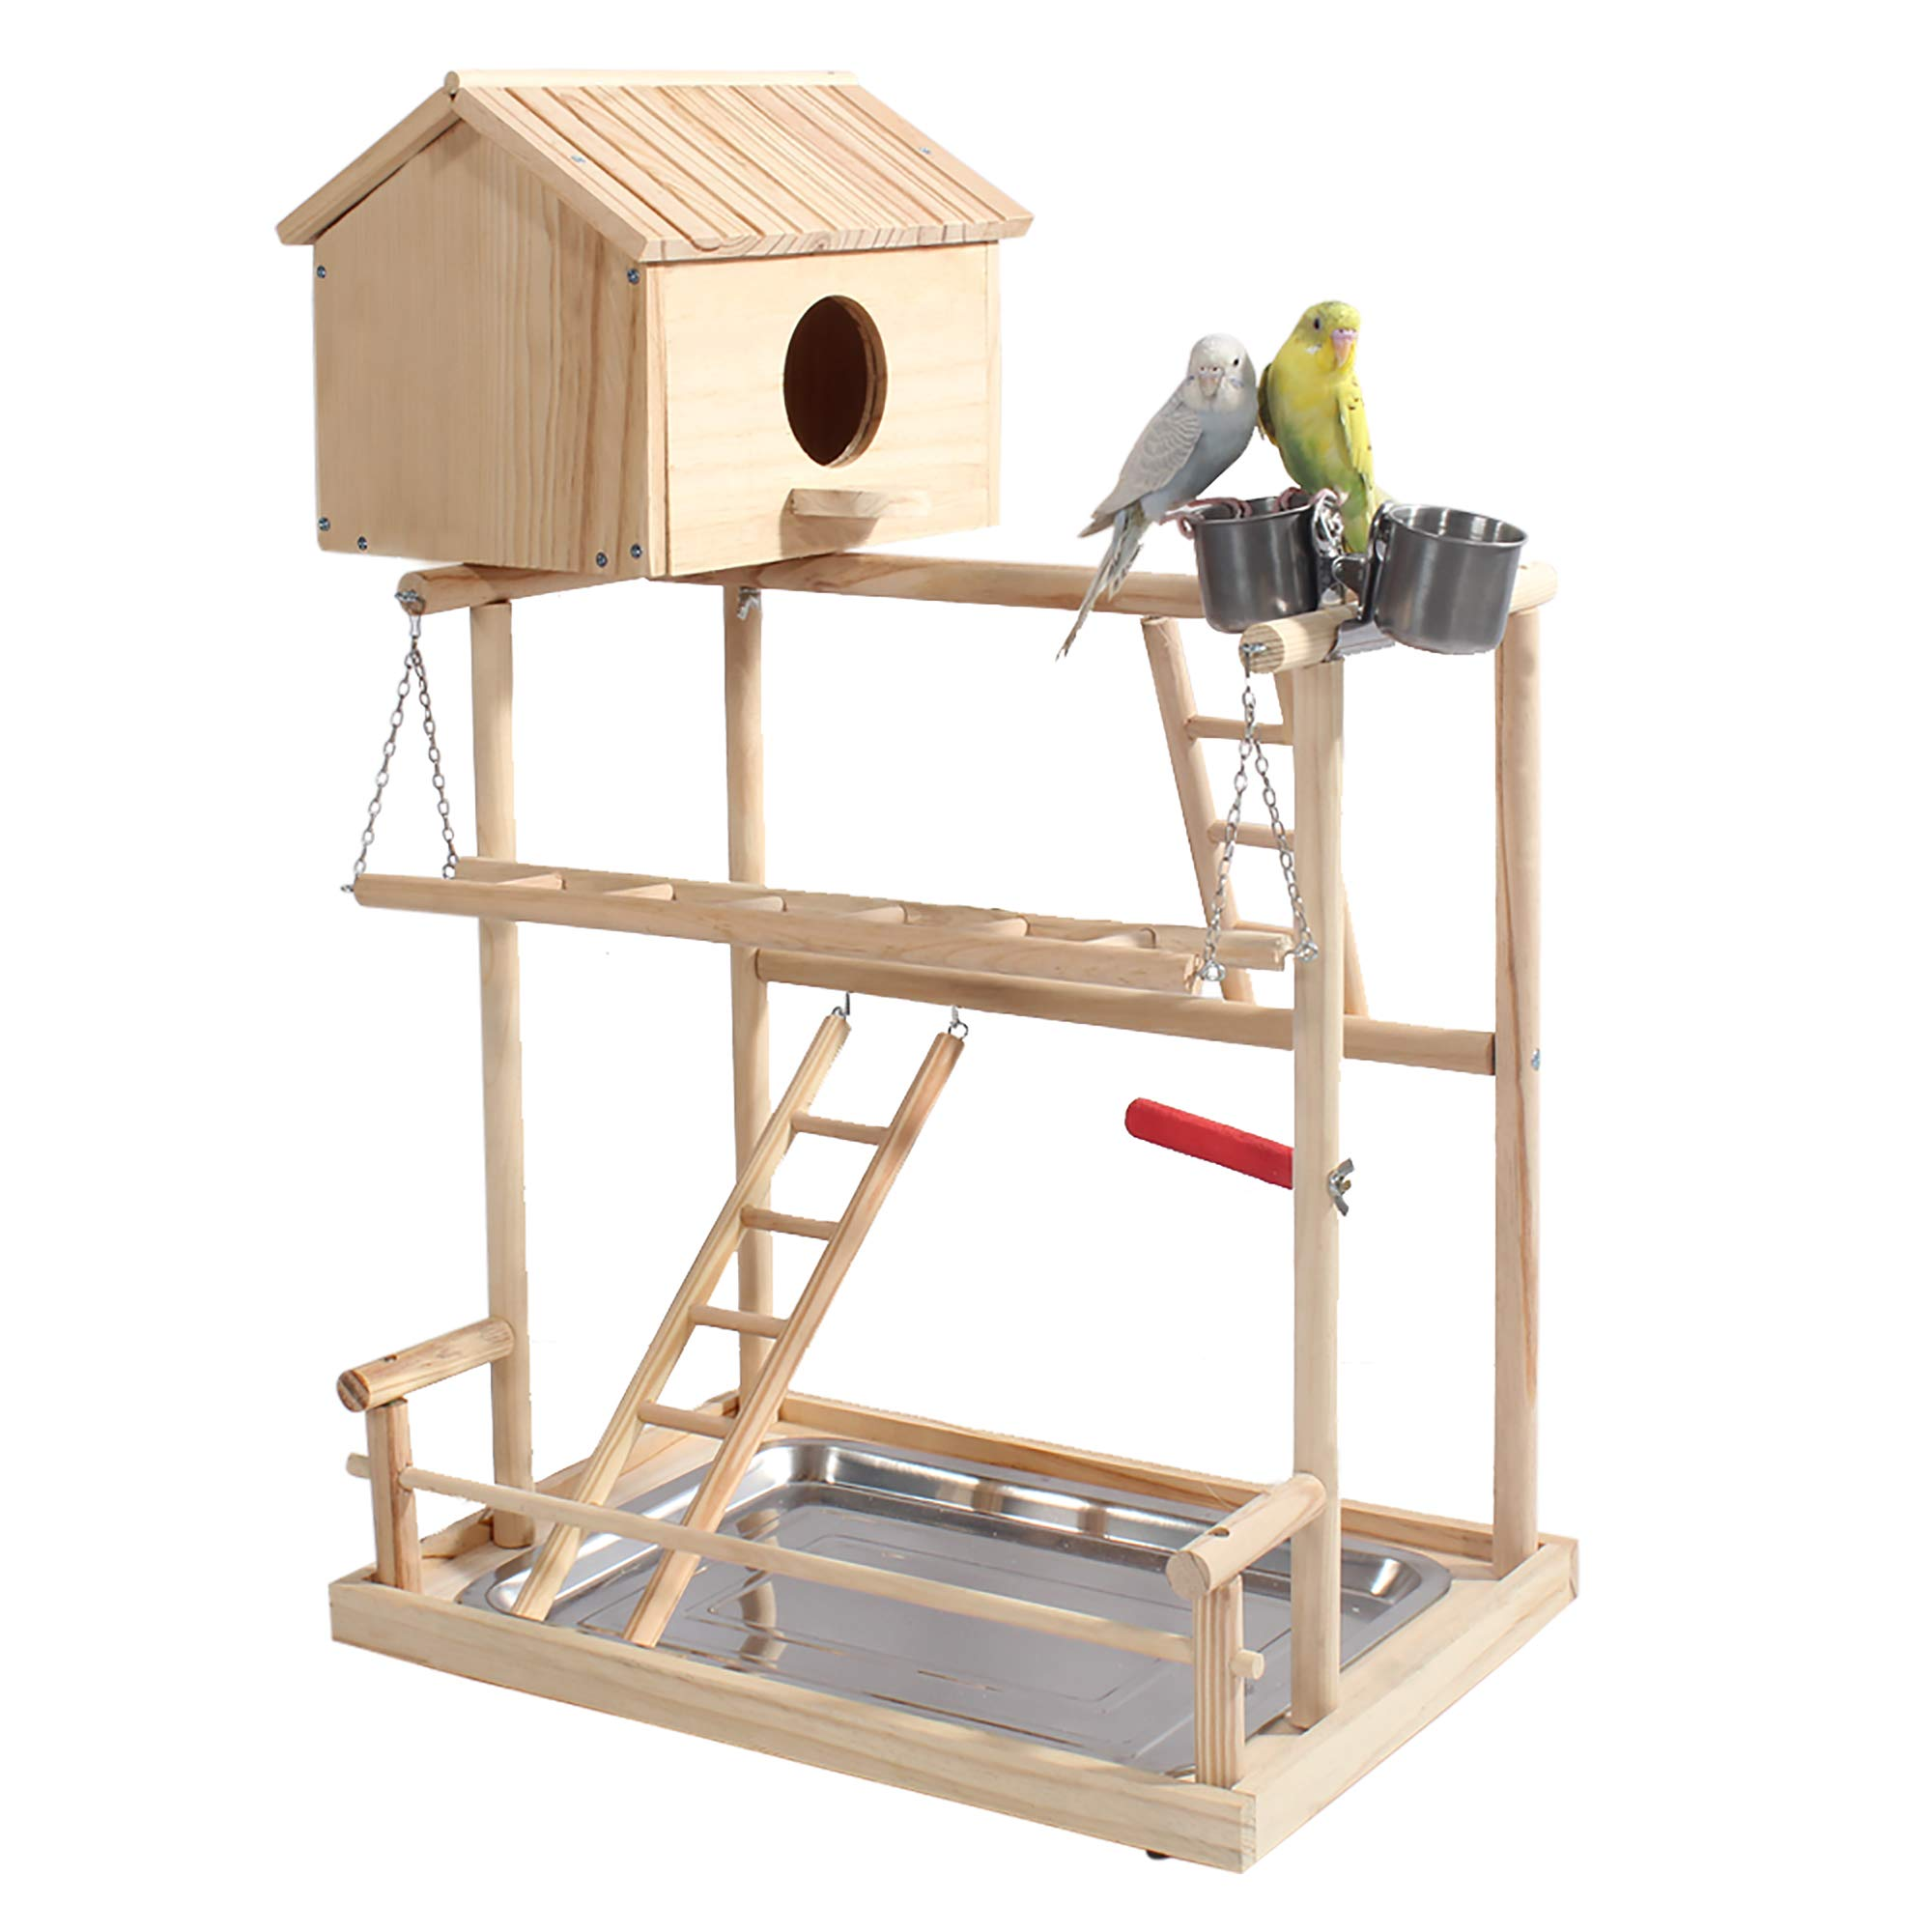 ROCKEVER Parrot Play Stand Bird Playground Cockatiel Gym with Nesting Box and Cups by ROCKEVER